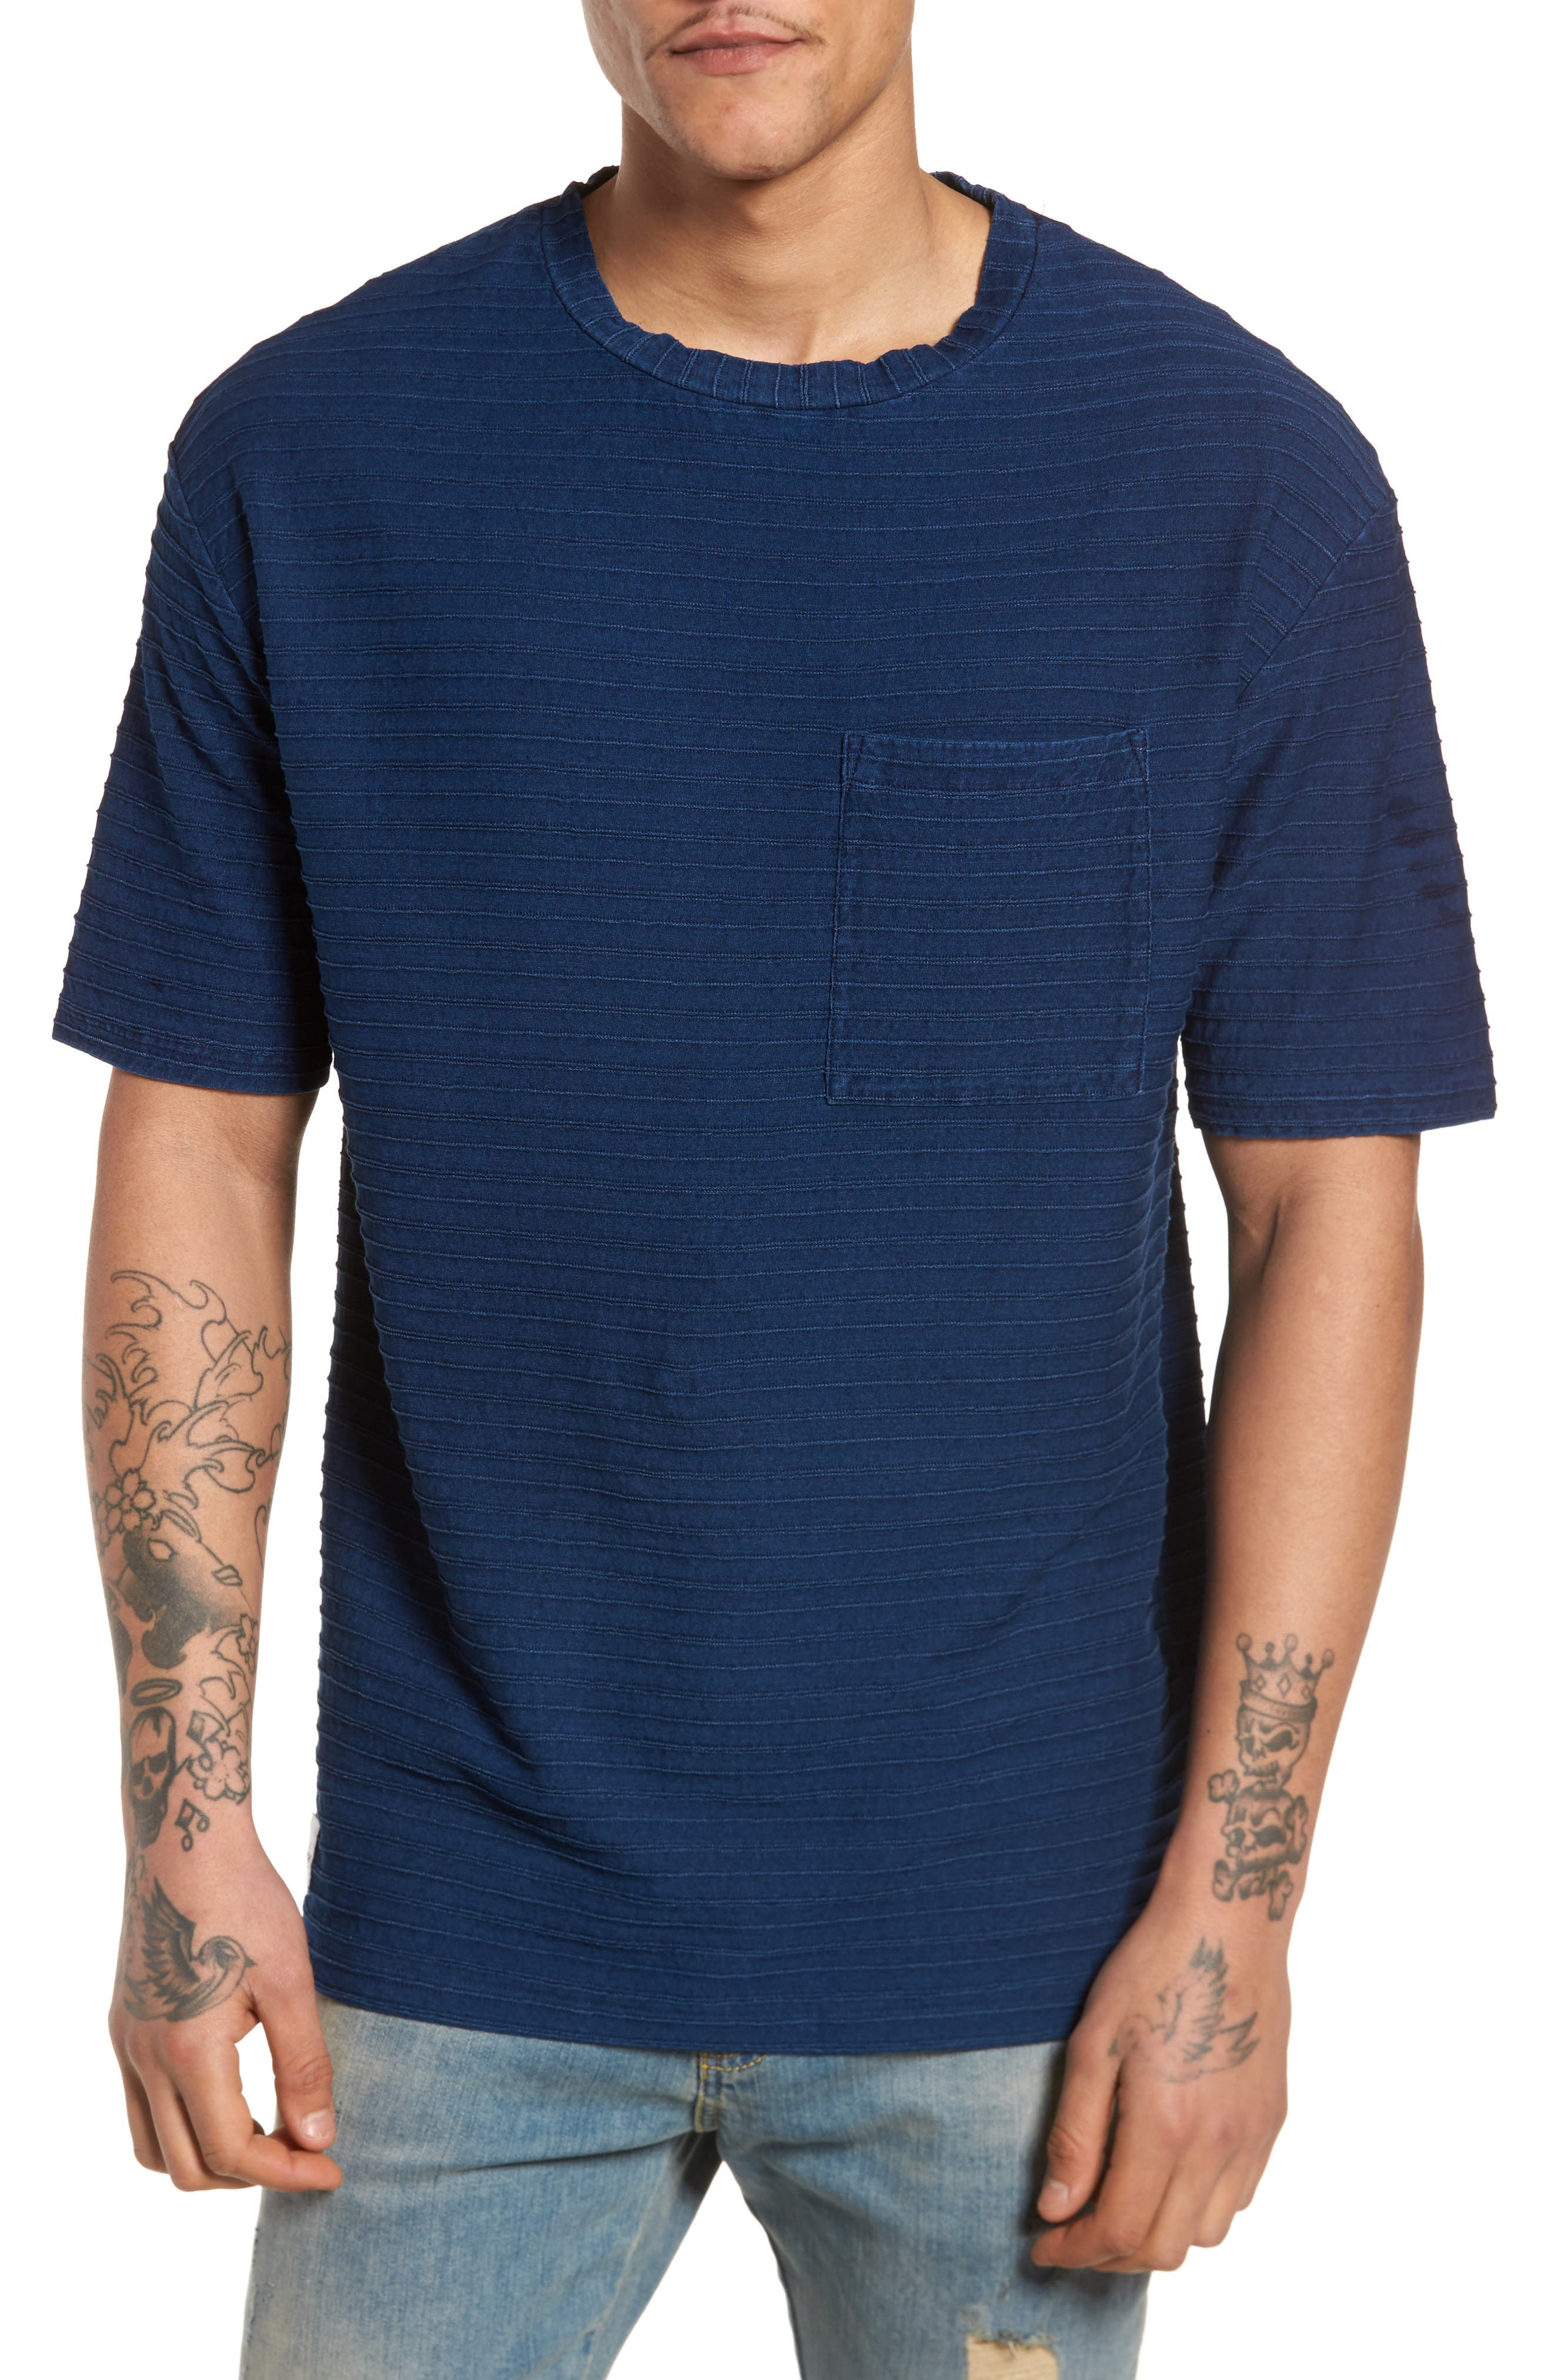 Tidal T-Shirt,                             Main thumbnail 1, color,                             Indigo